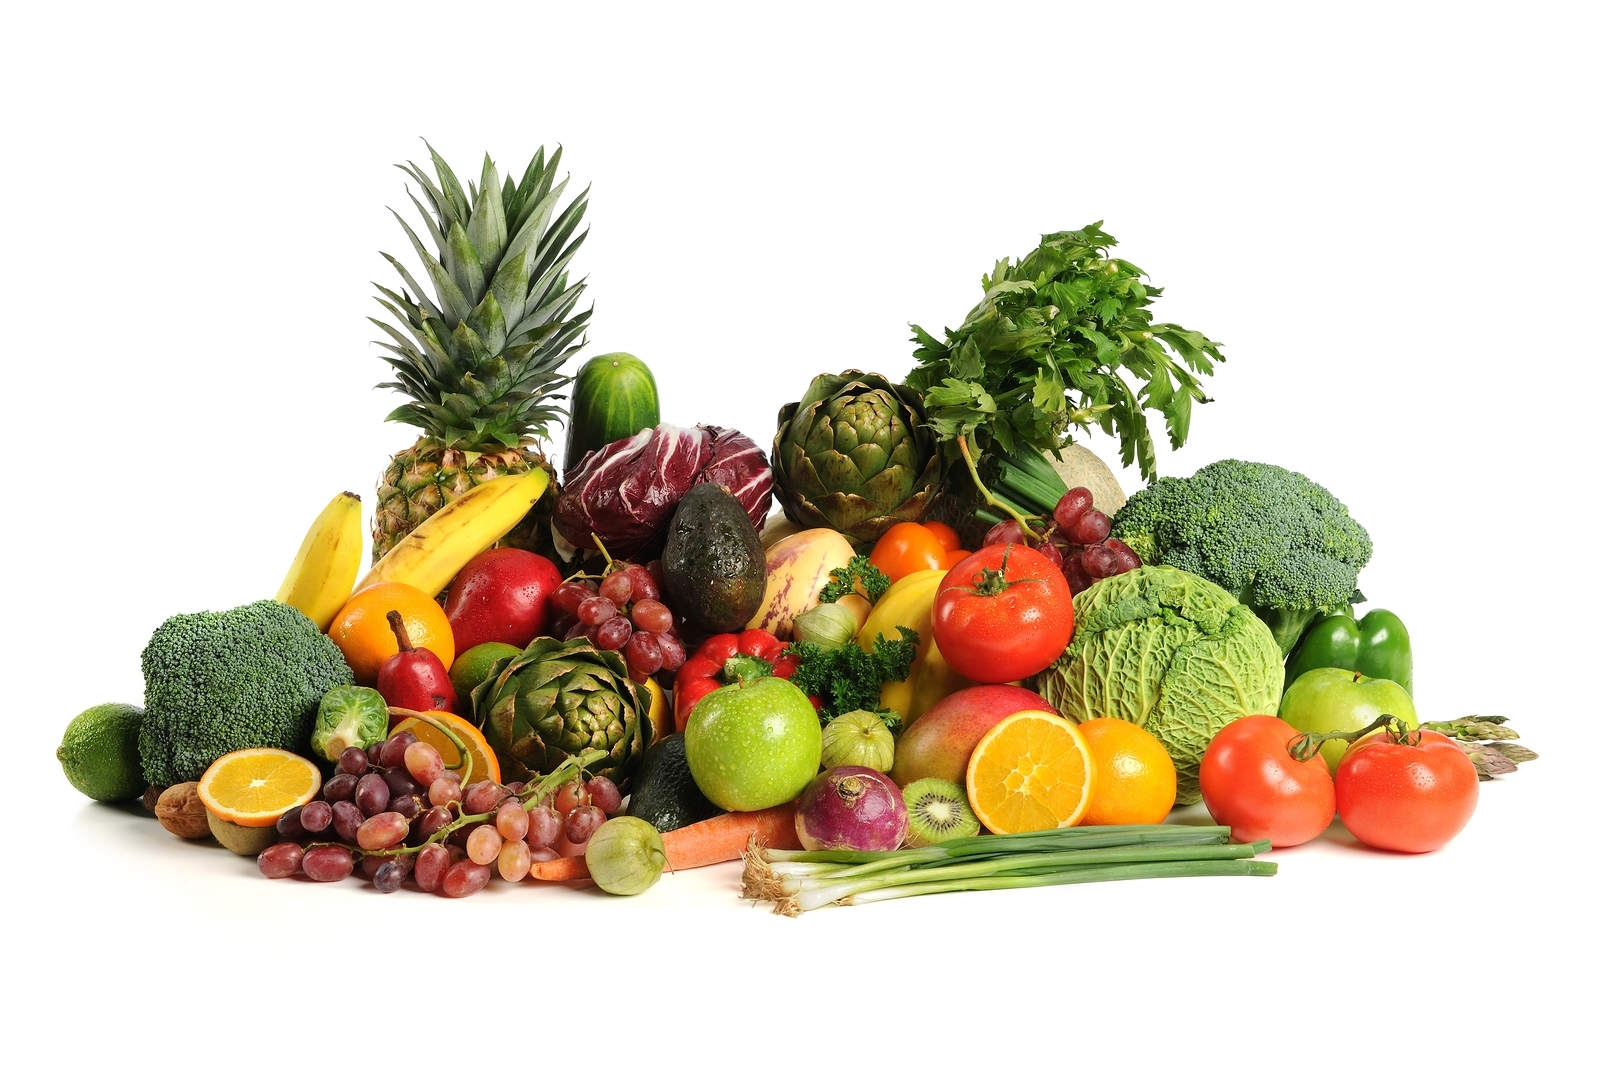 e062033dc110a44934c5_fruits-and-vegetables.jpg